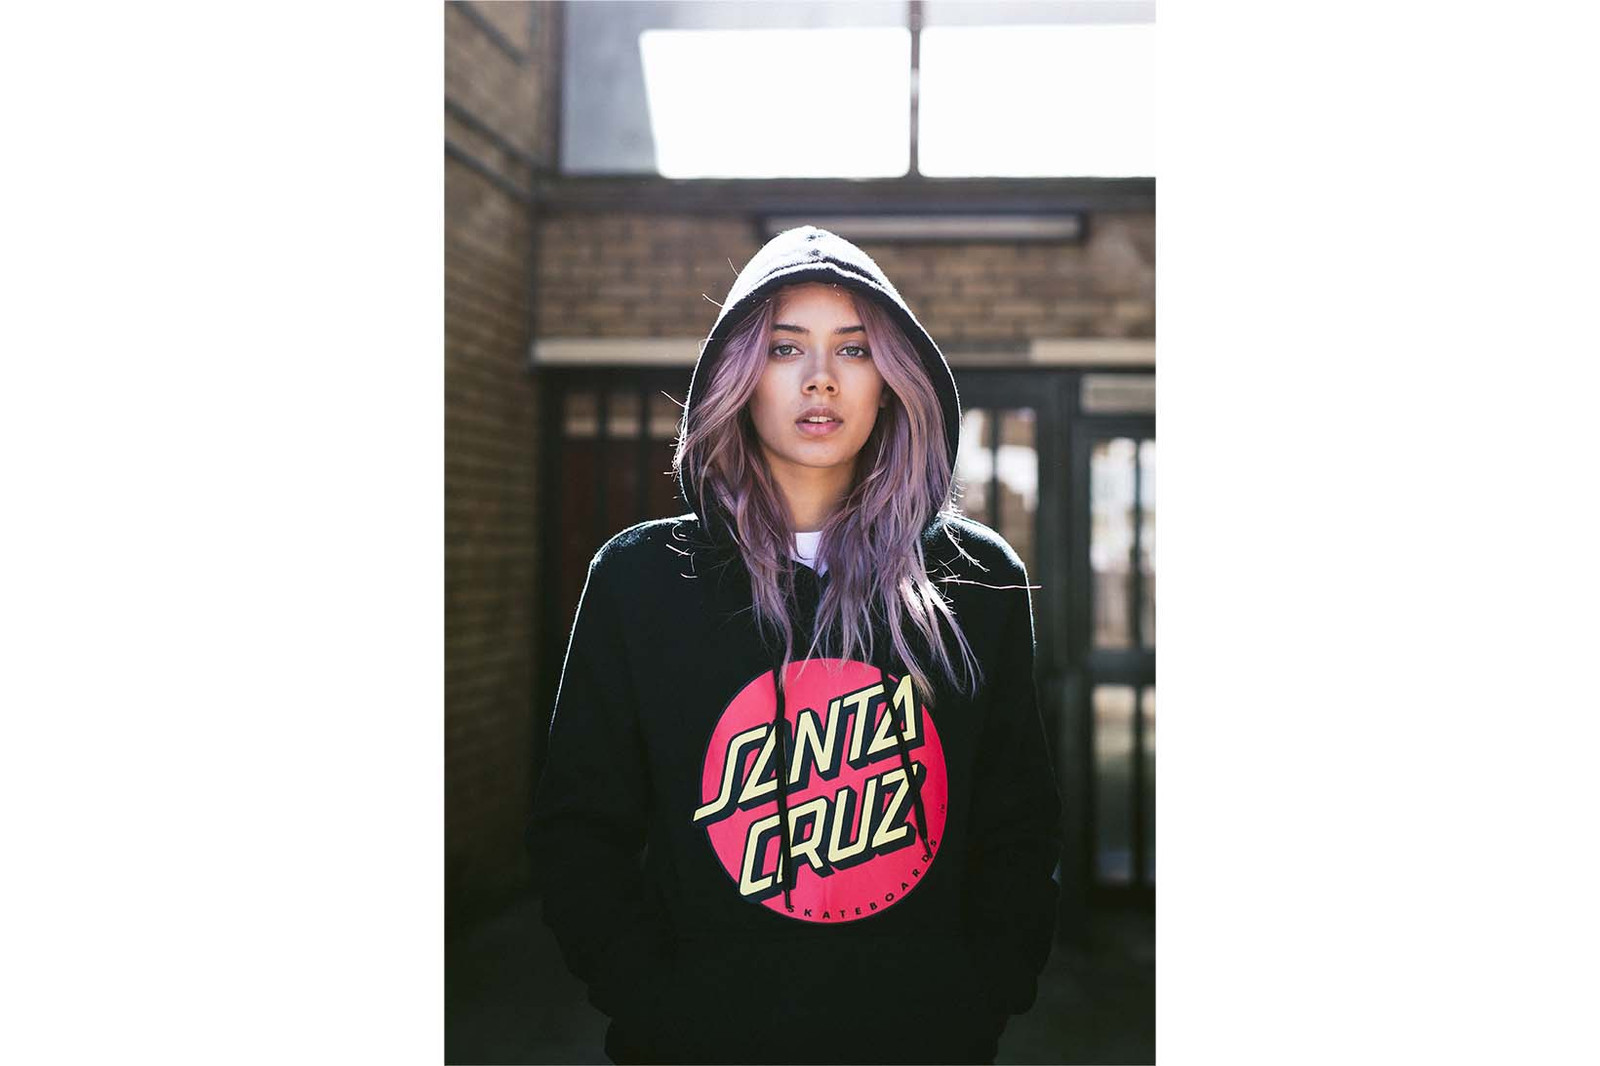 Best Women's Skate Clothing Brands Stussy Vans Brujas Dickies Carhartt Nikita OBEY Santa Cruz Volcom Wasted Paris Female Skateboarding